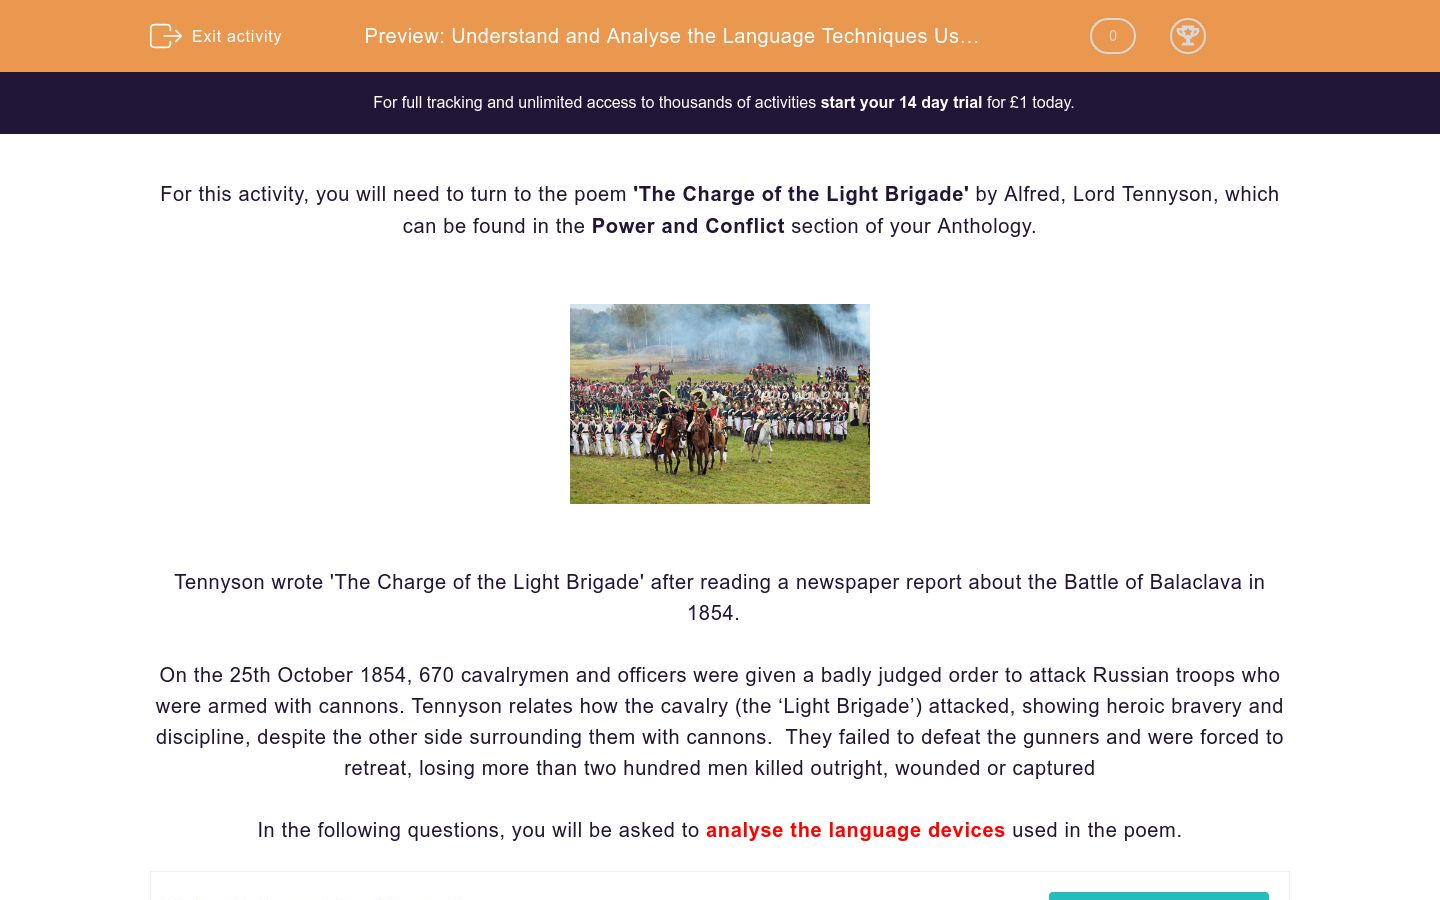 'Understand and Analyse the Language Techniques Used in the Poem 'The Charge of the Light Brigade' by Alfred Lord Tennyson' worksheet